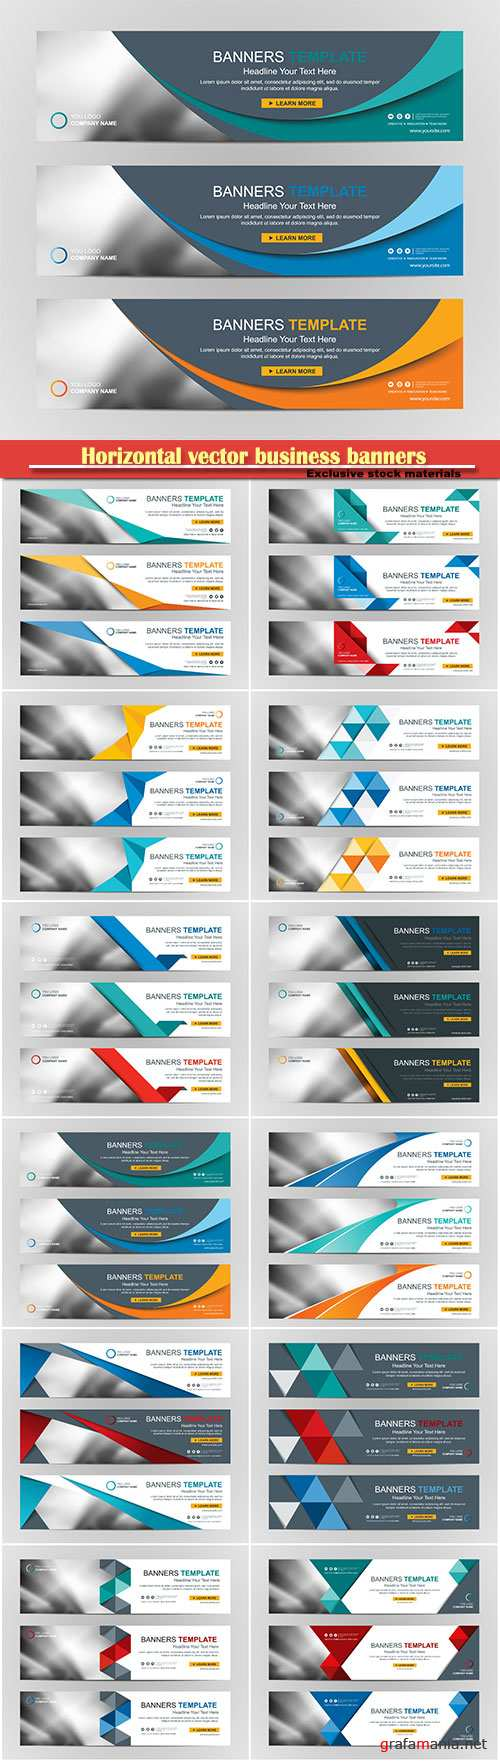 Horizontal vector business banners # 3